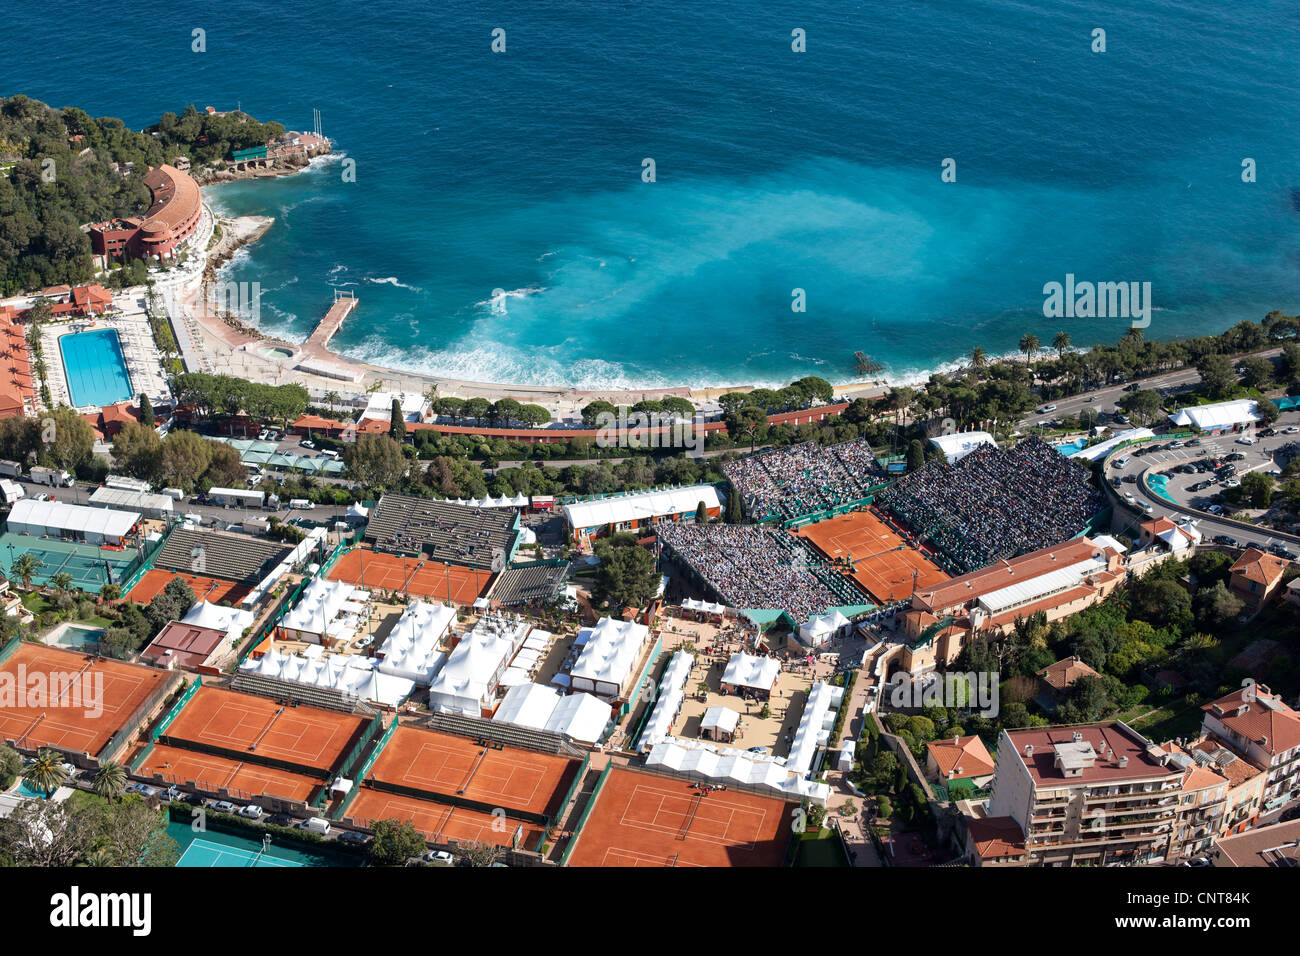 MONTE-CARLO ROLEX MASTERS 2012. This tennis tournament actually takes place in picturesque Roquebrune-Cap-Martin, - Stock Image